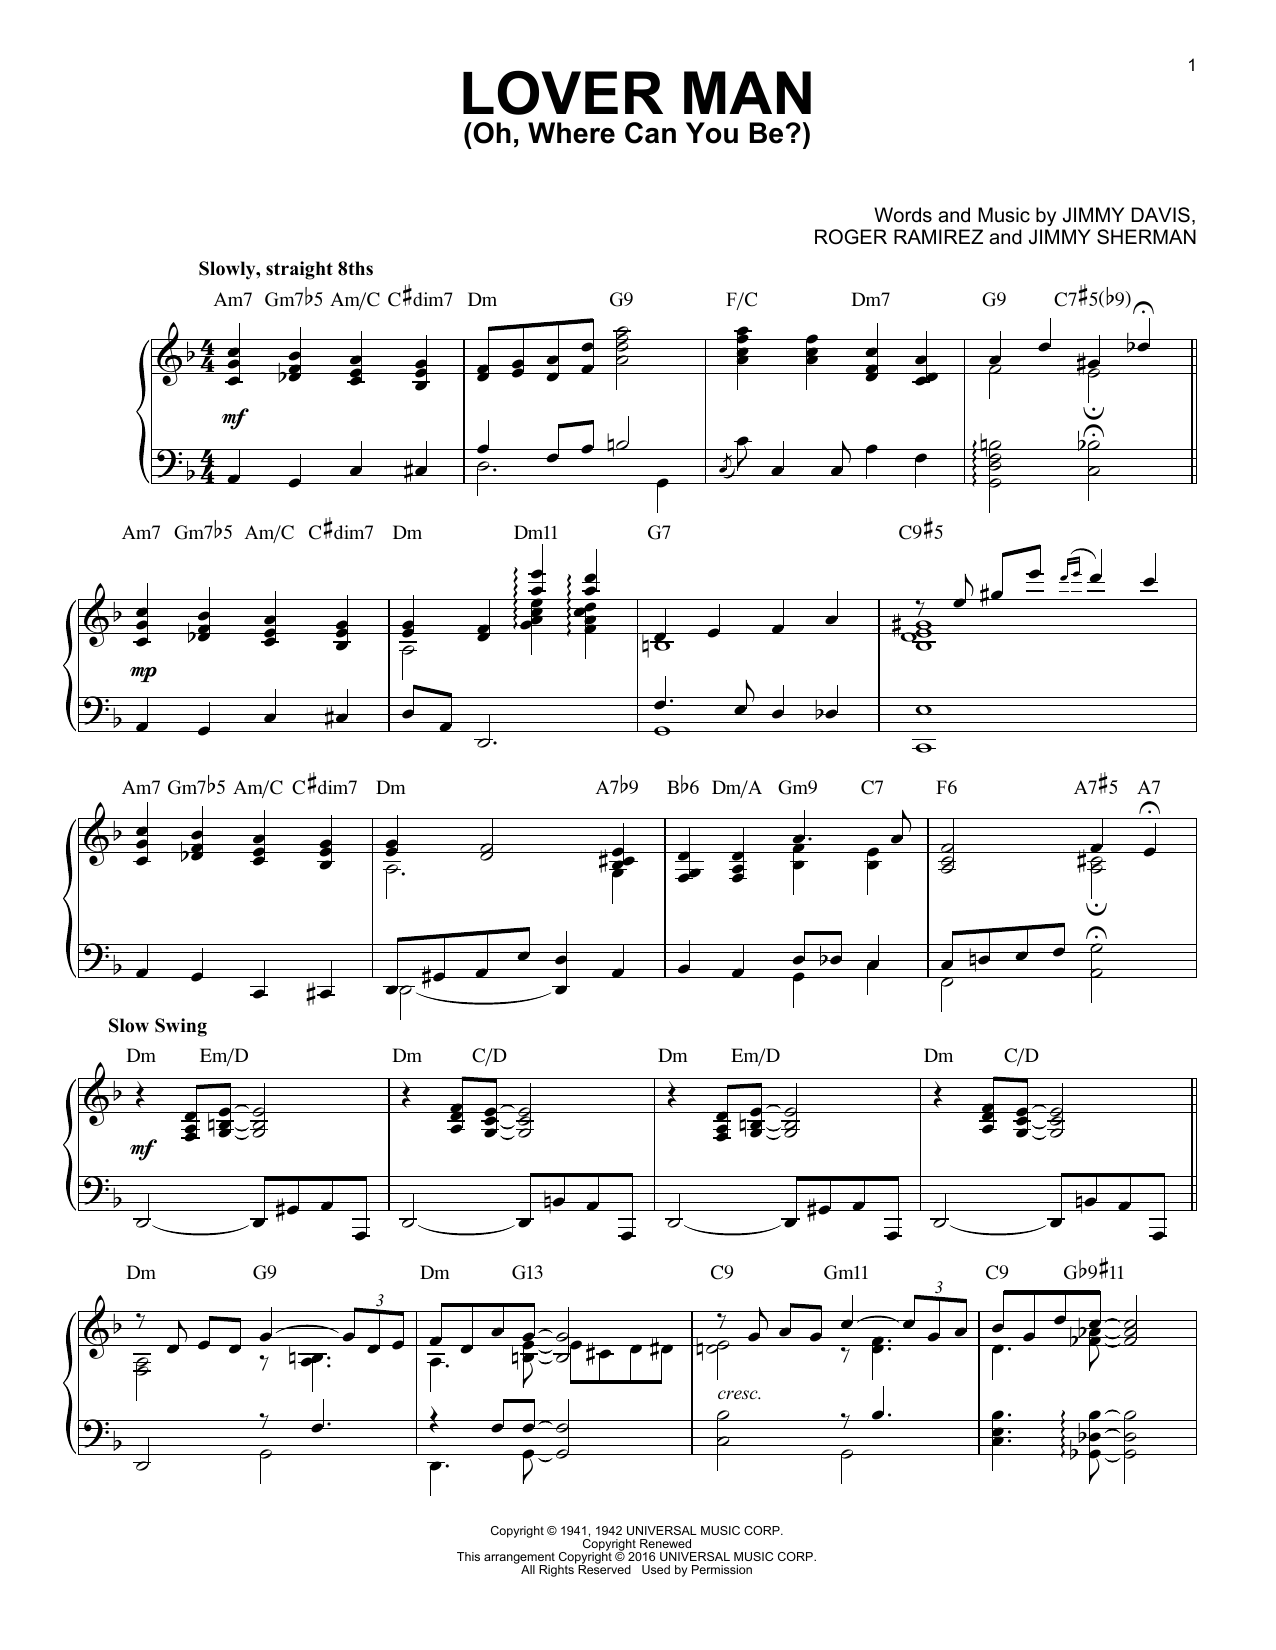 Lover Man (Oh, Where Can You Be?) Sheet Music